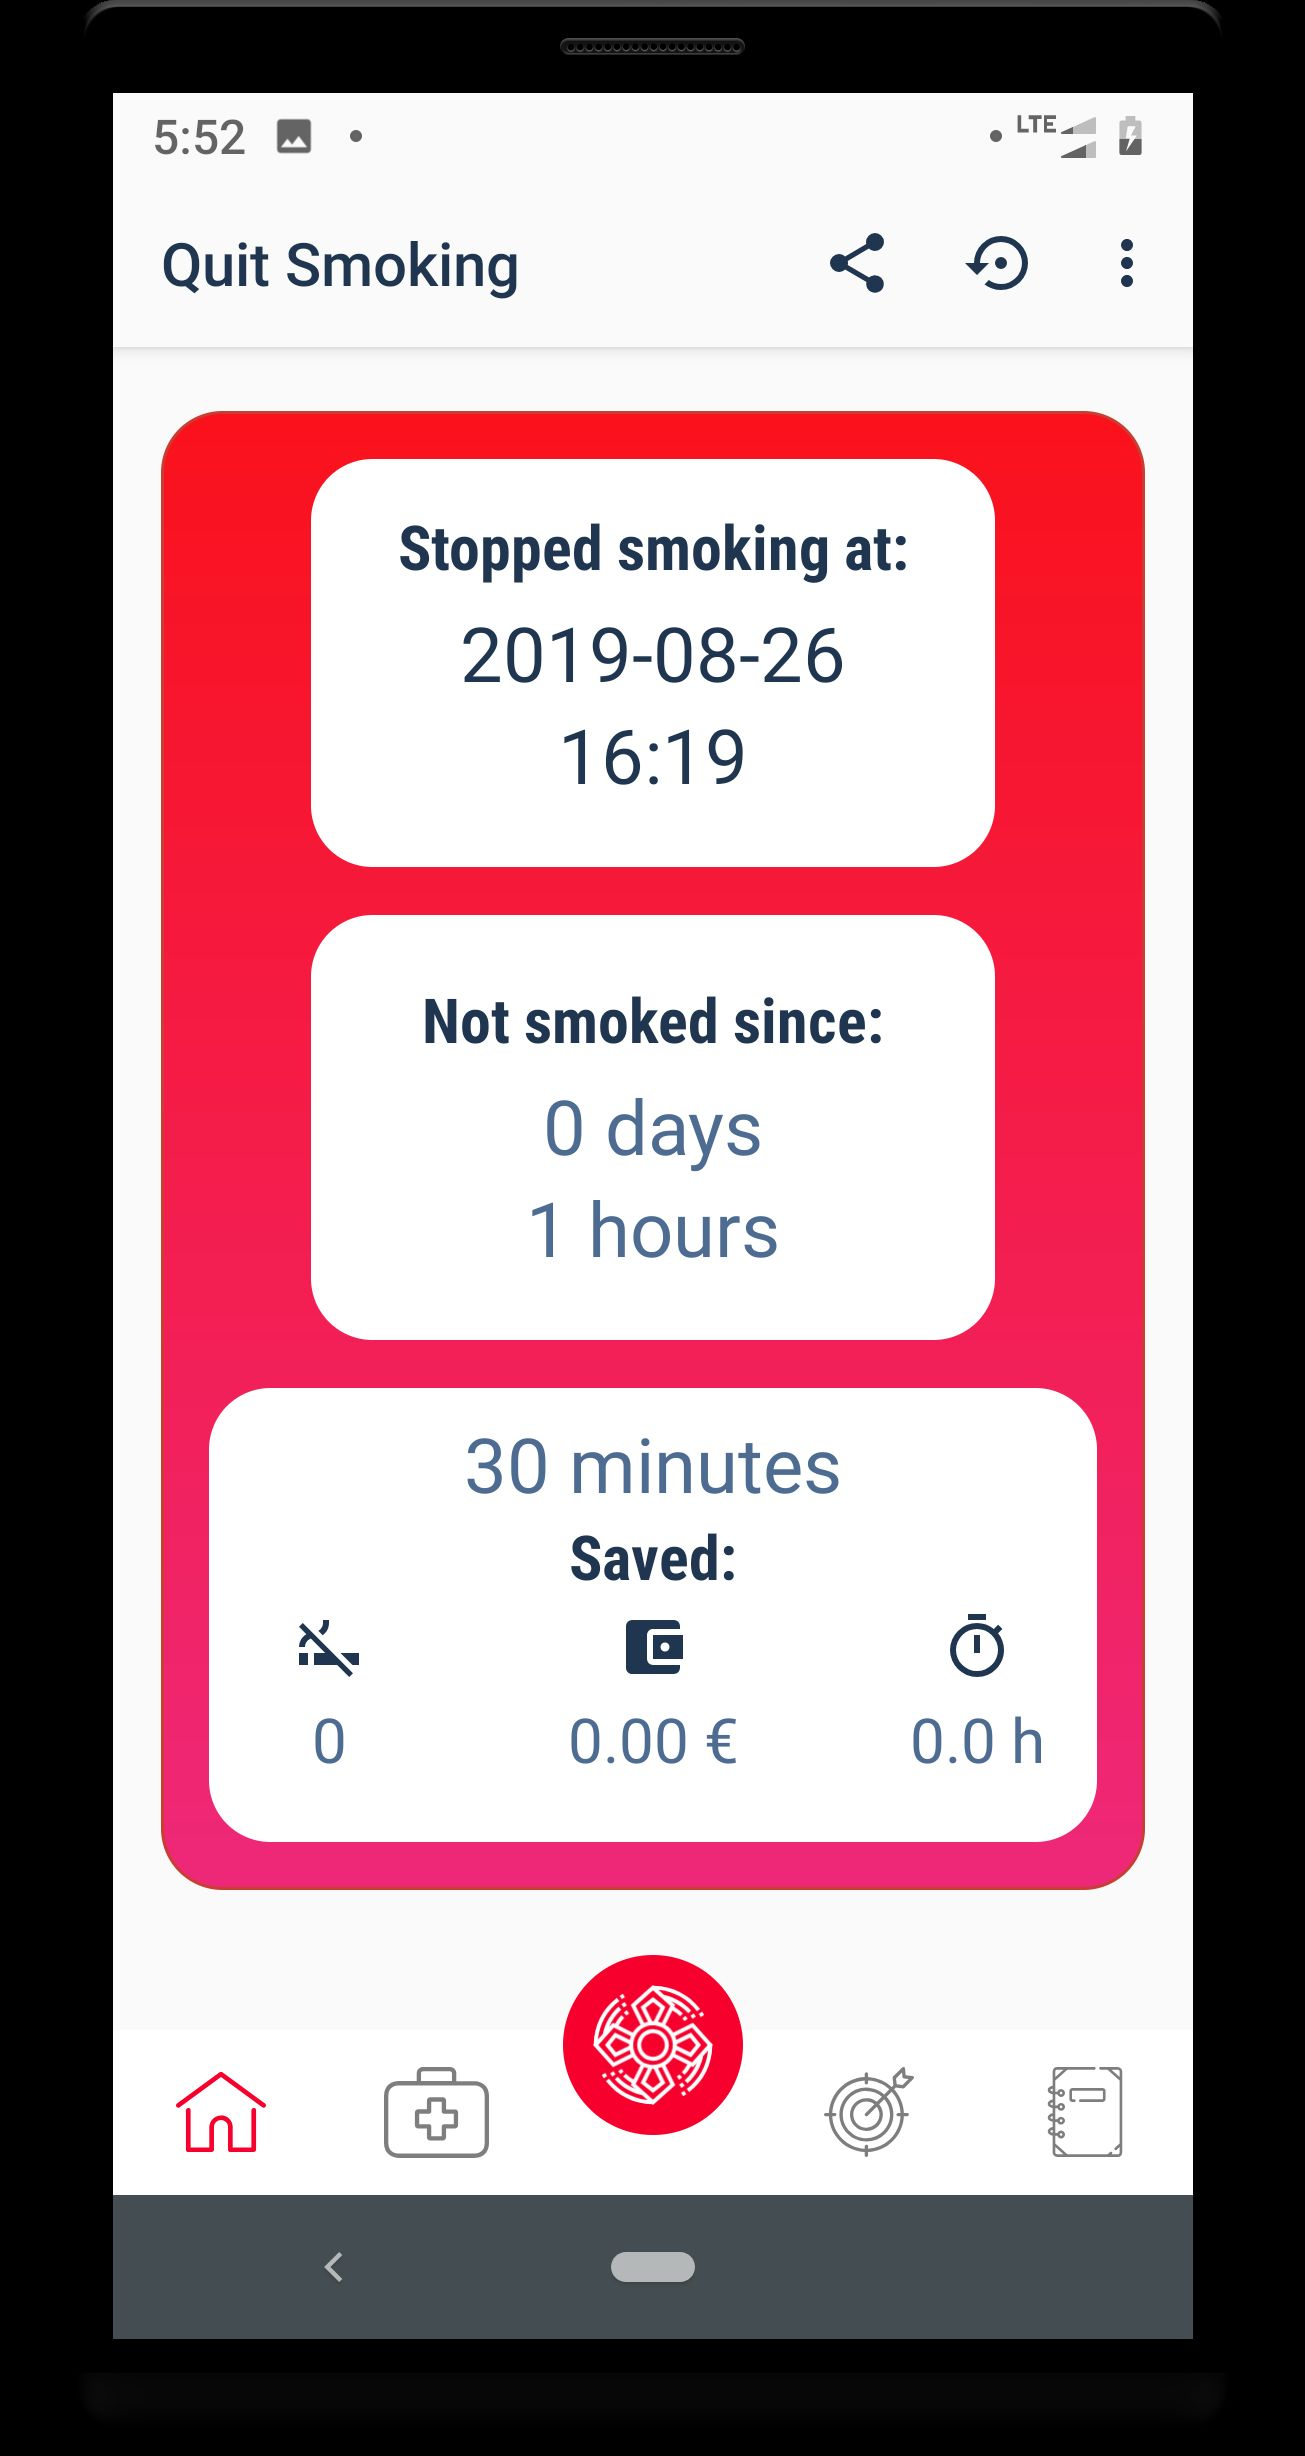 Quit smoking - Android Source code Screenshot 3